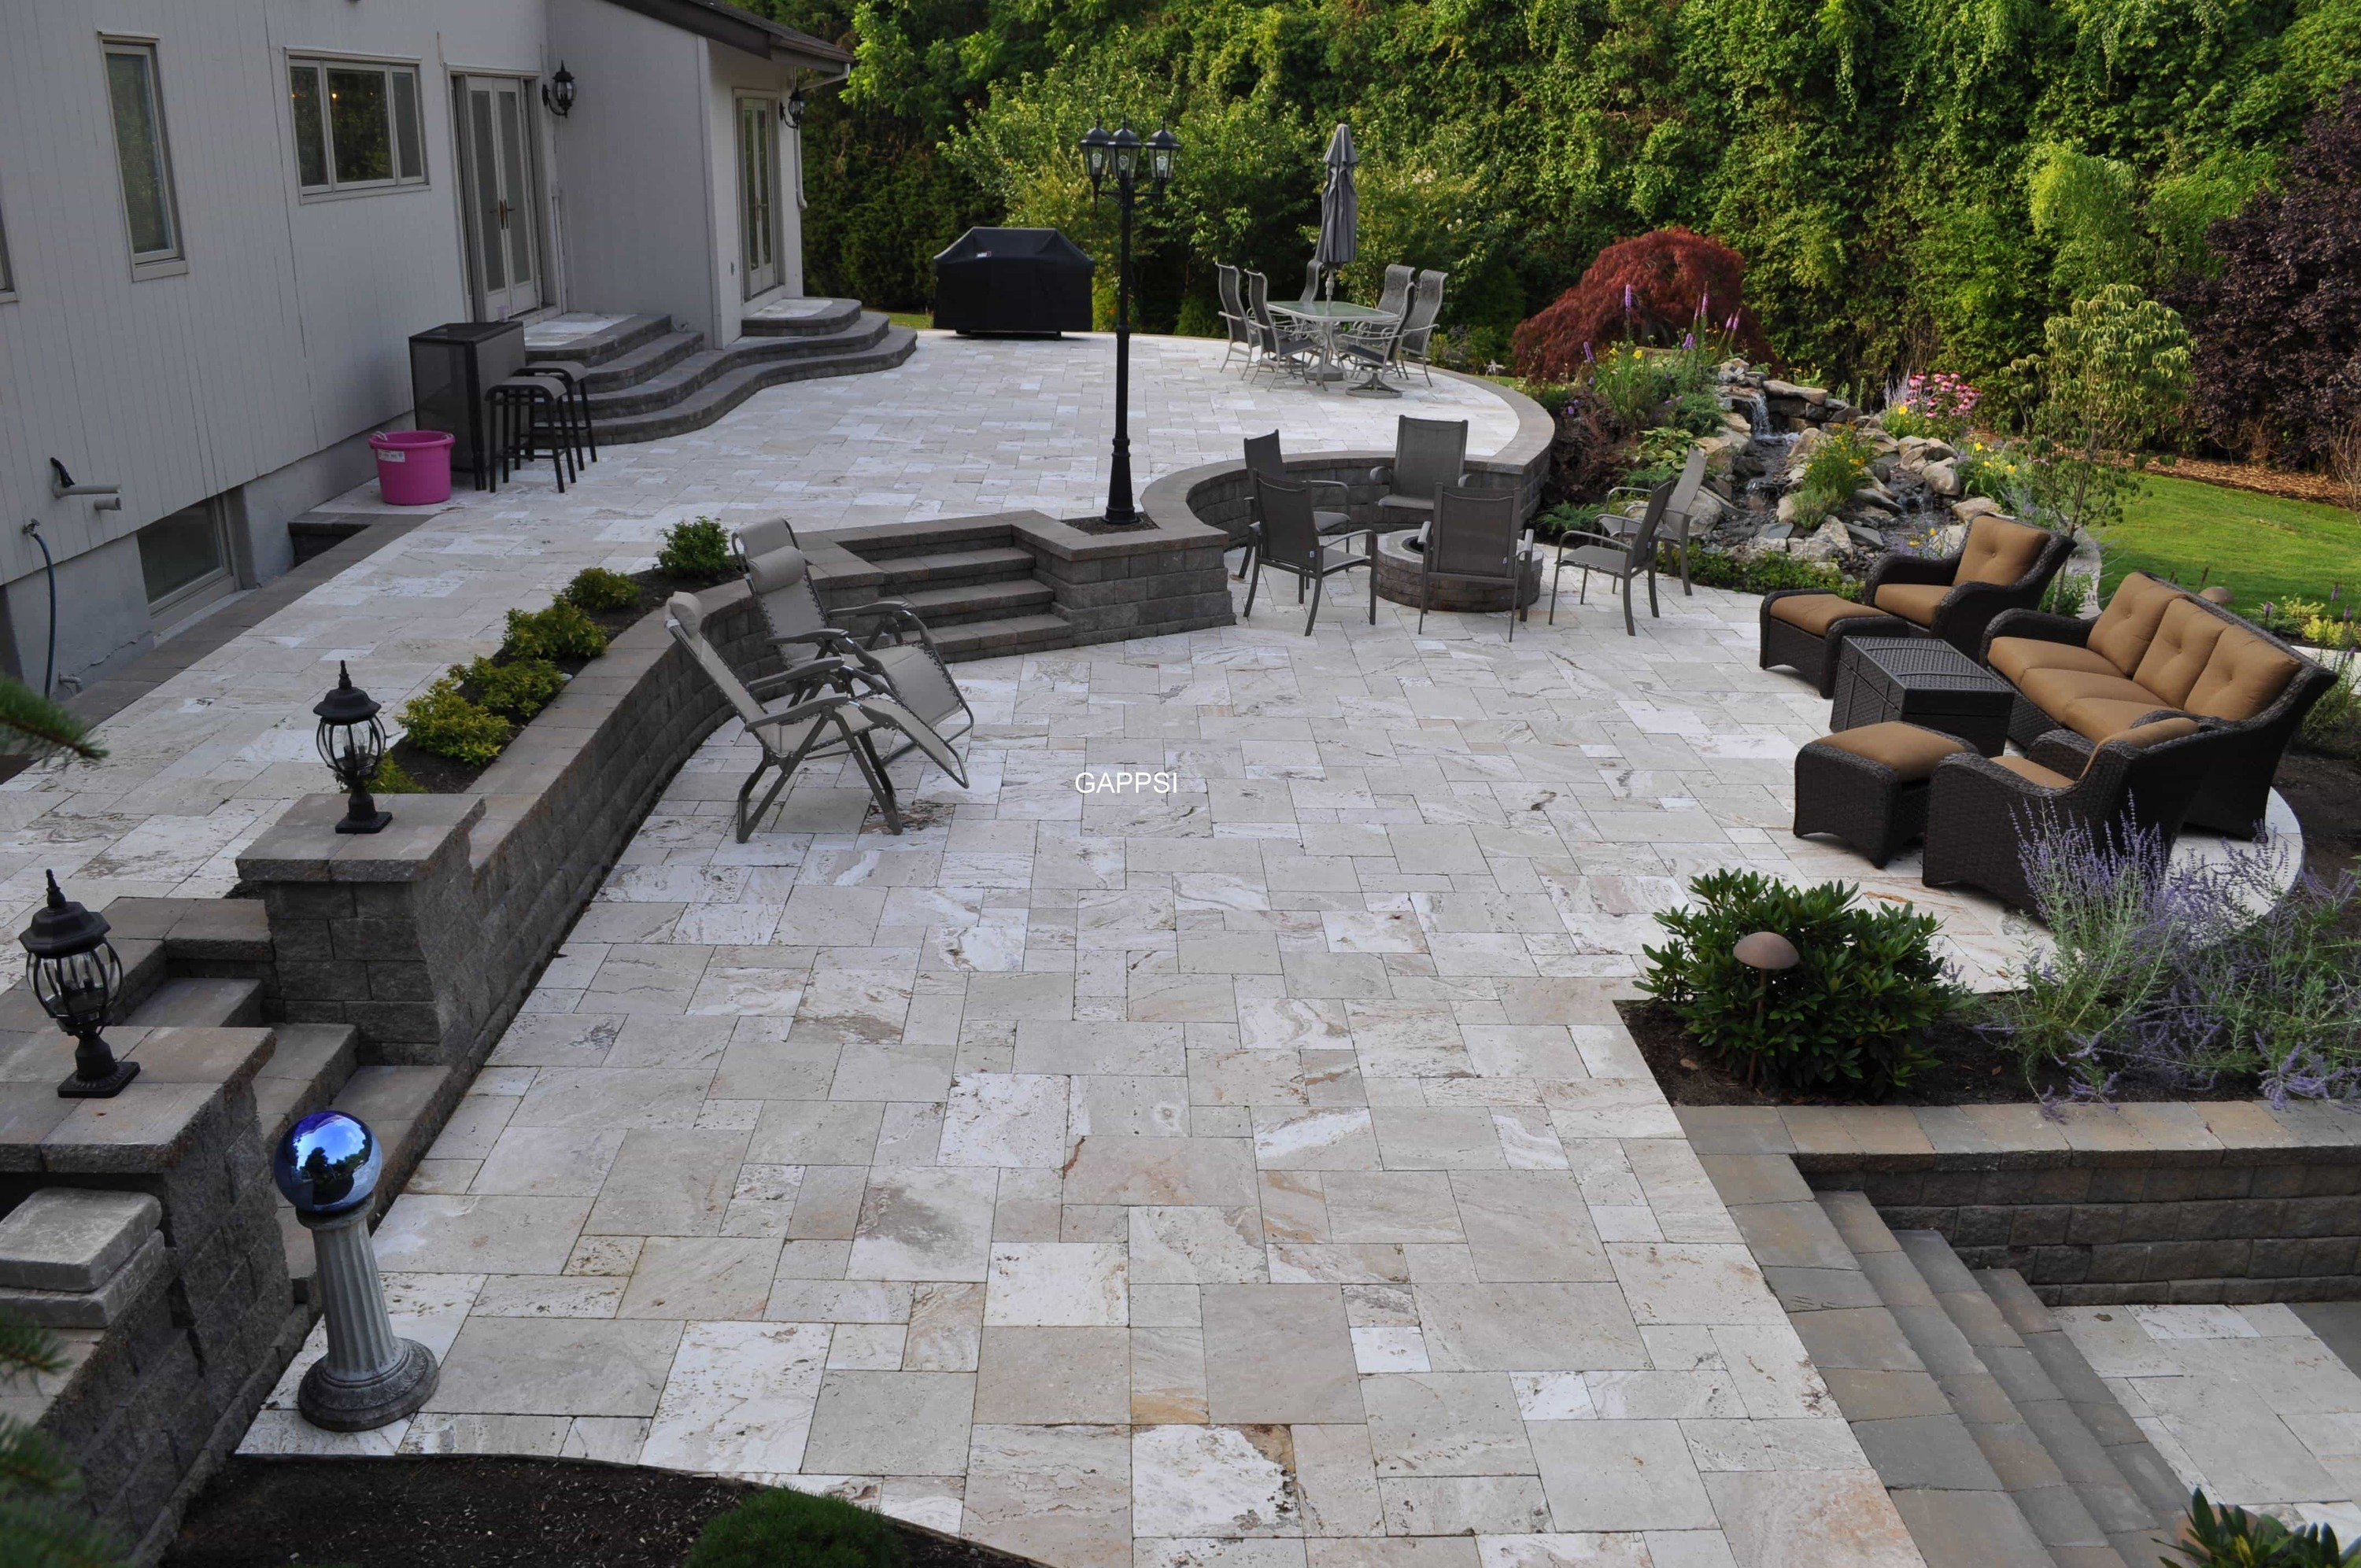 Naturals Stones Pavers & Wall Veneers - Distributor ... on Travertine Patio Ideas id=93369